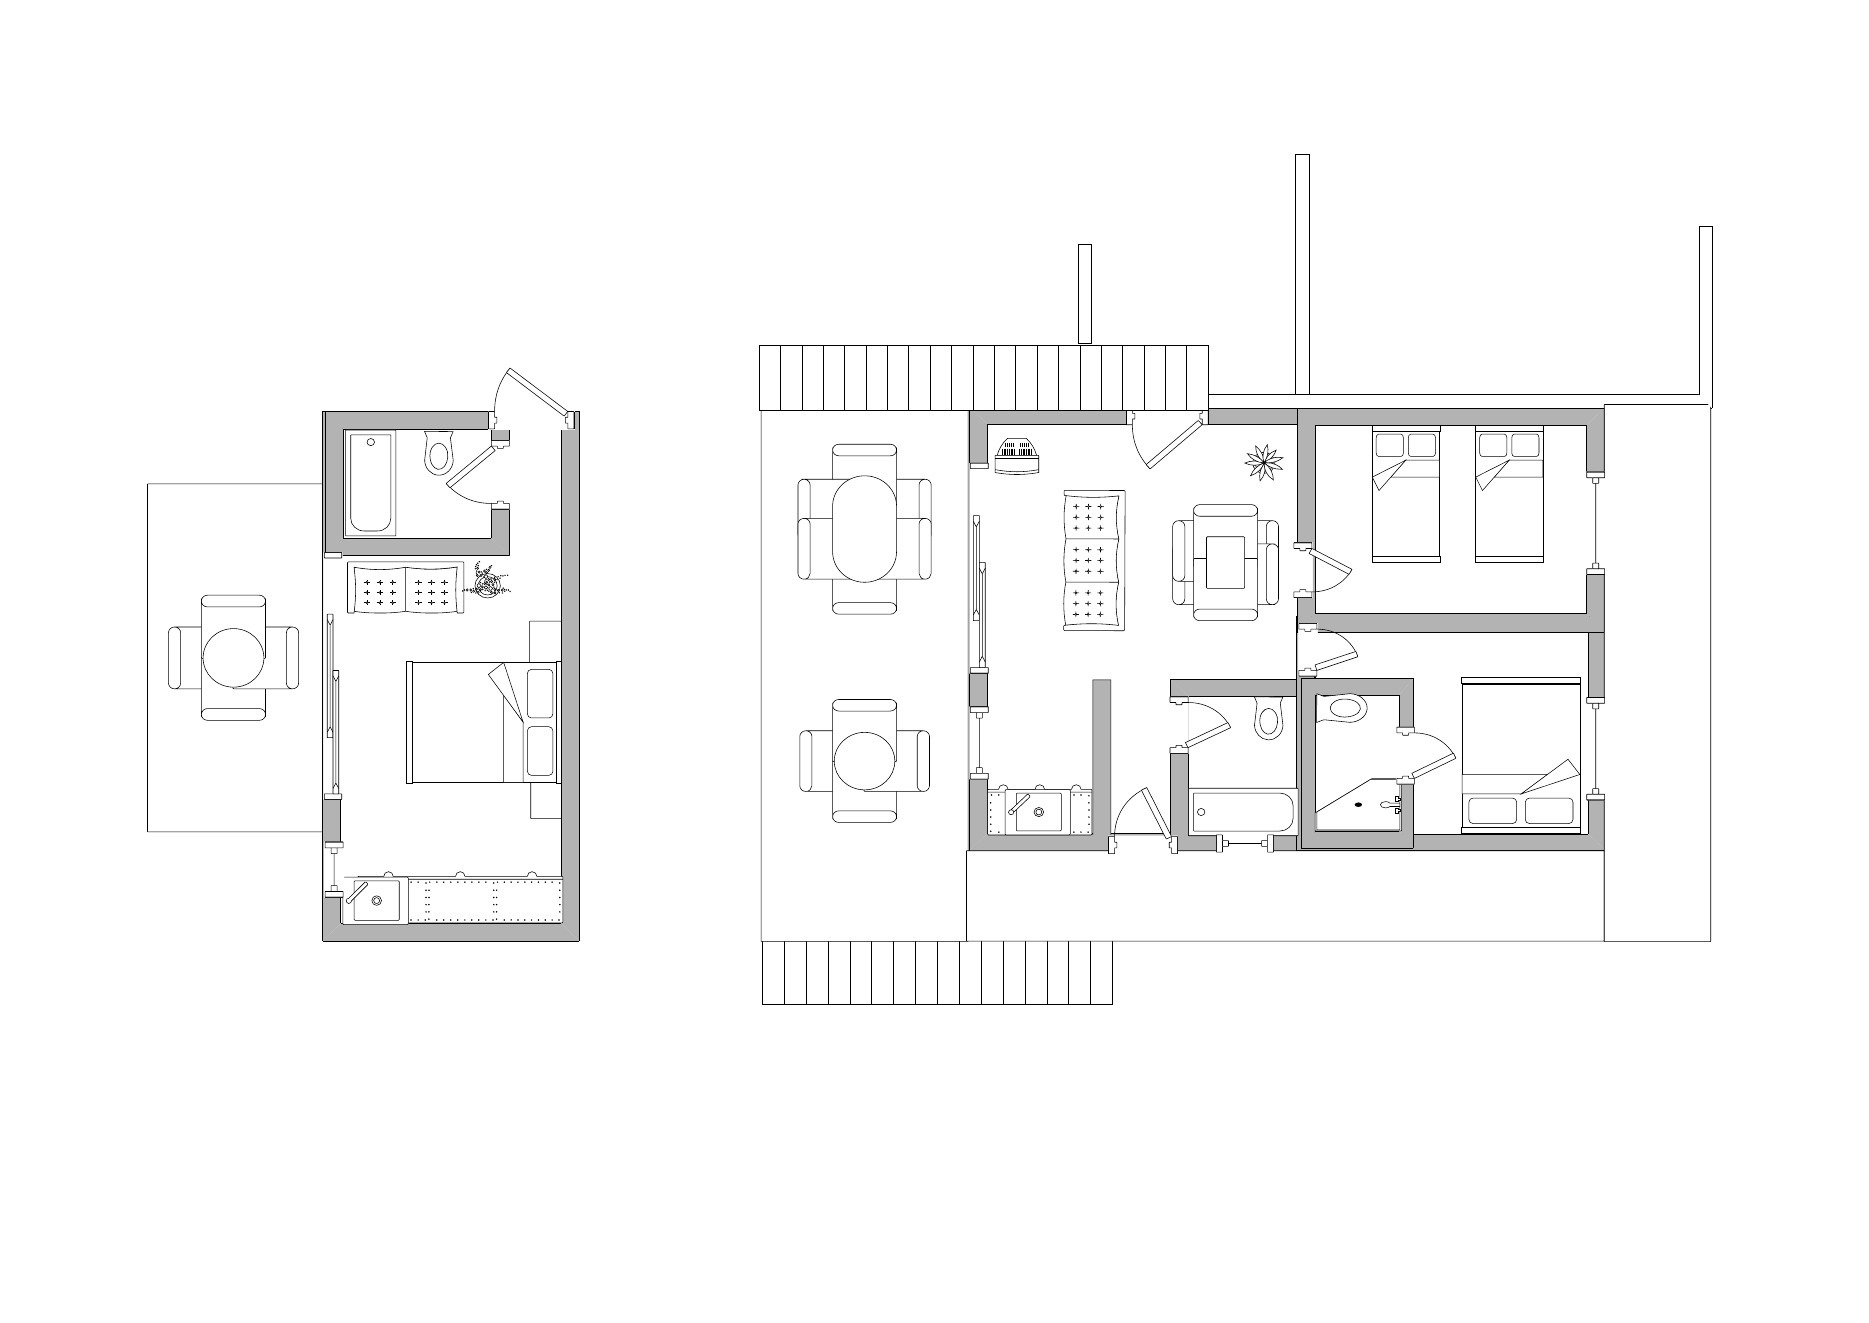 3 Bed Condo Floorplan